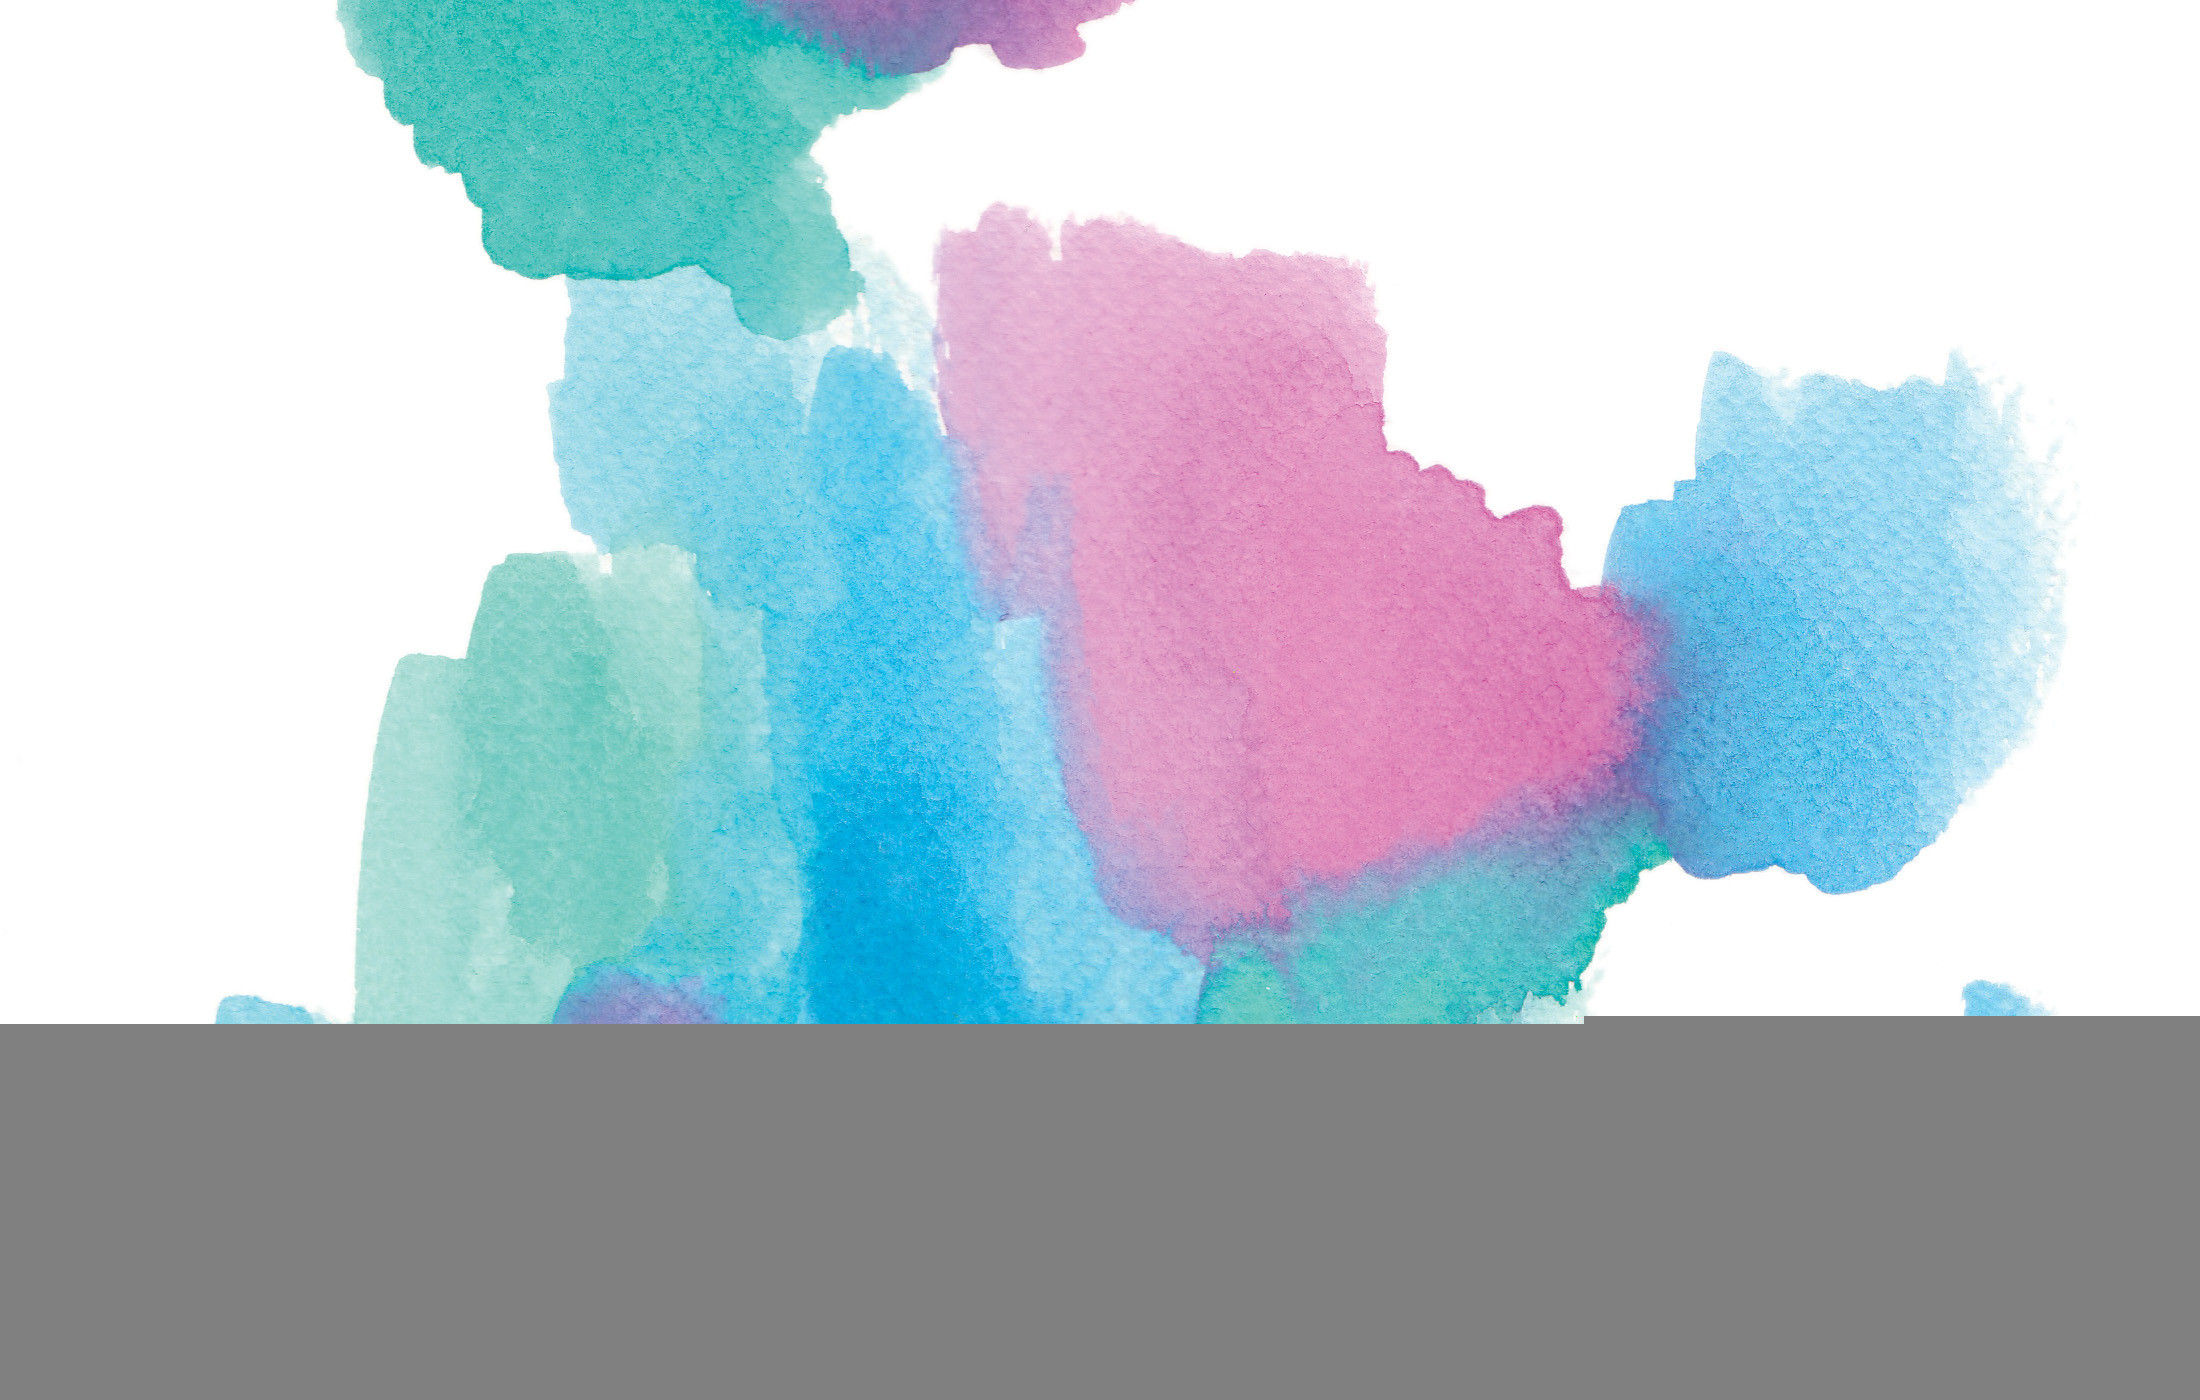 2200x1400 Watercolor design-only version (download here)